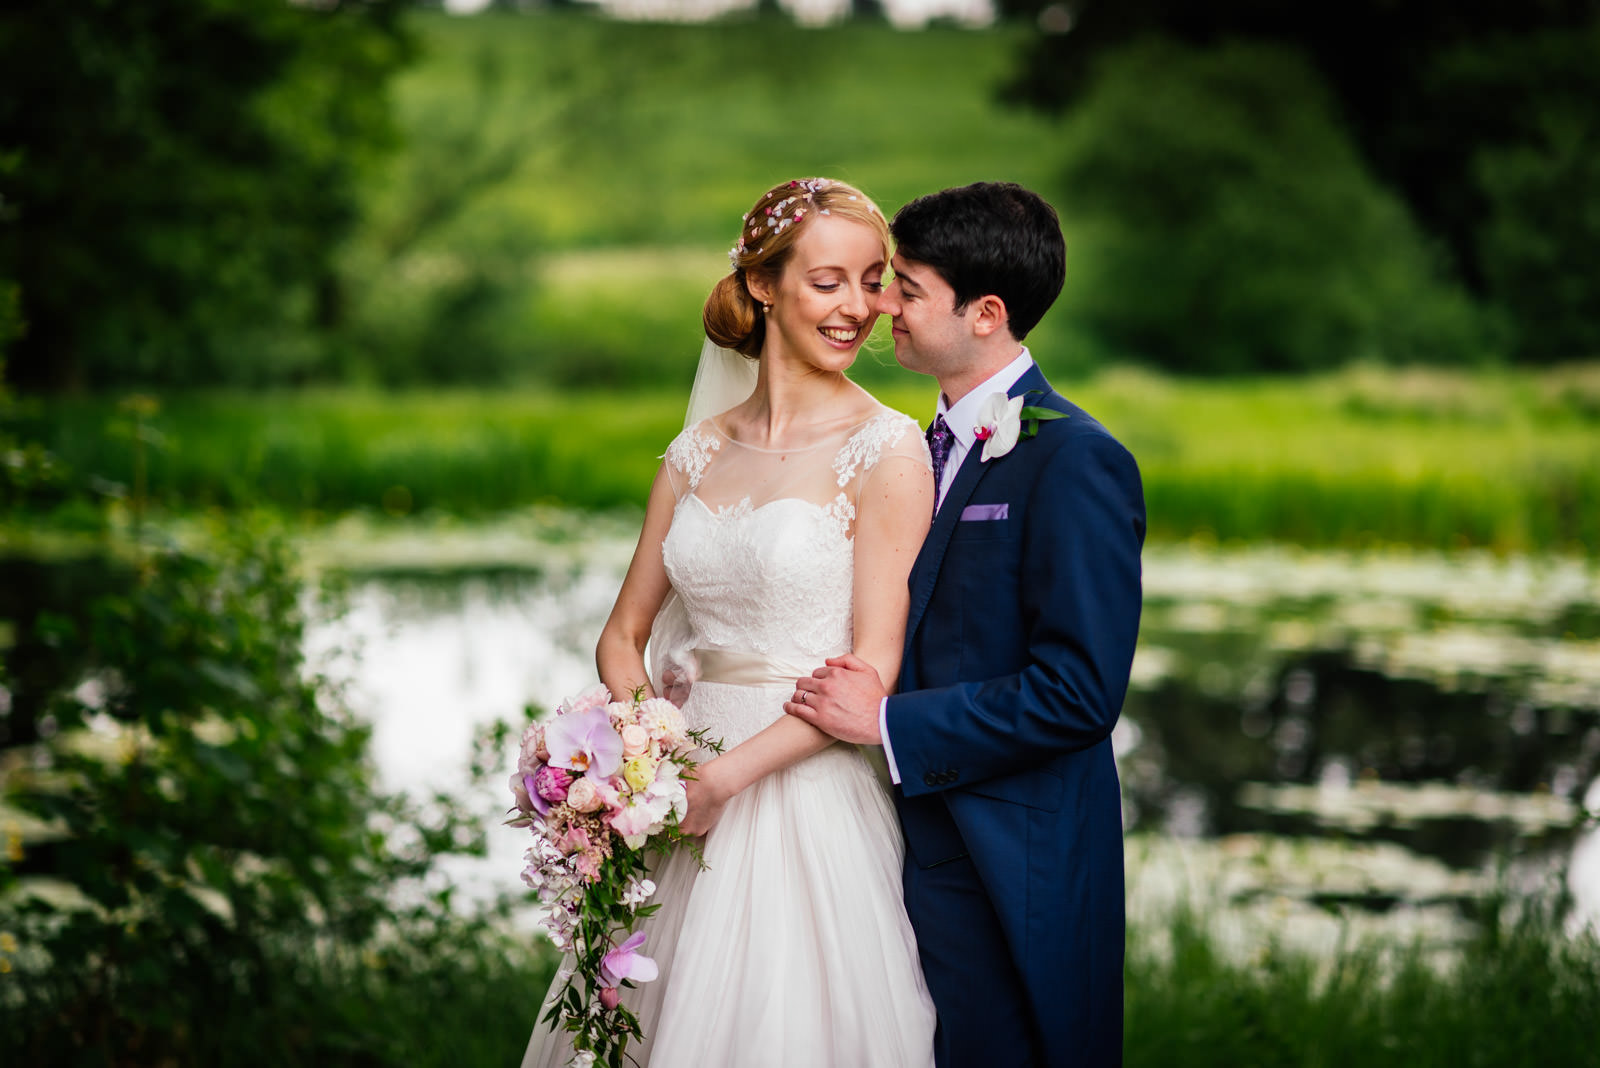 Rushton Hall Wedding